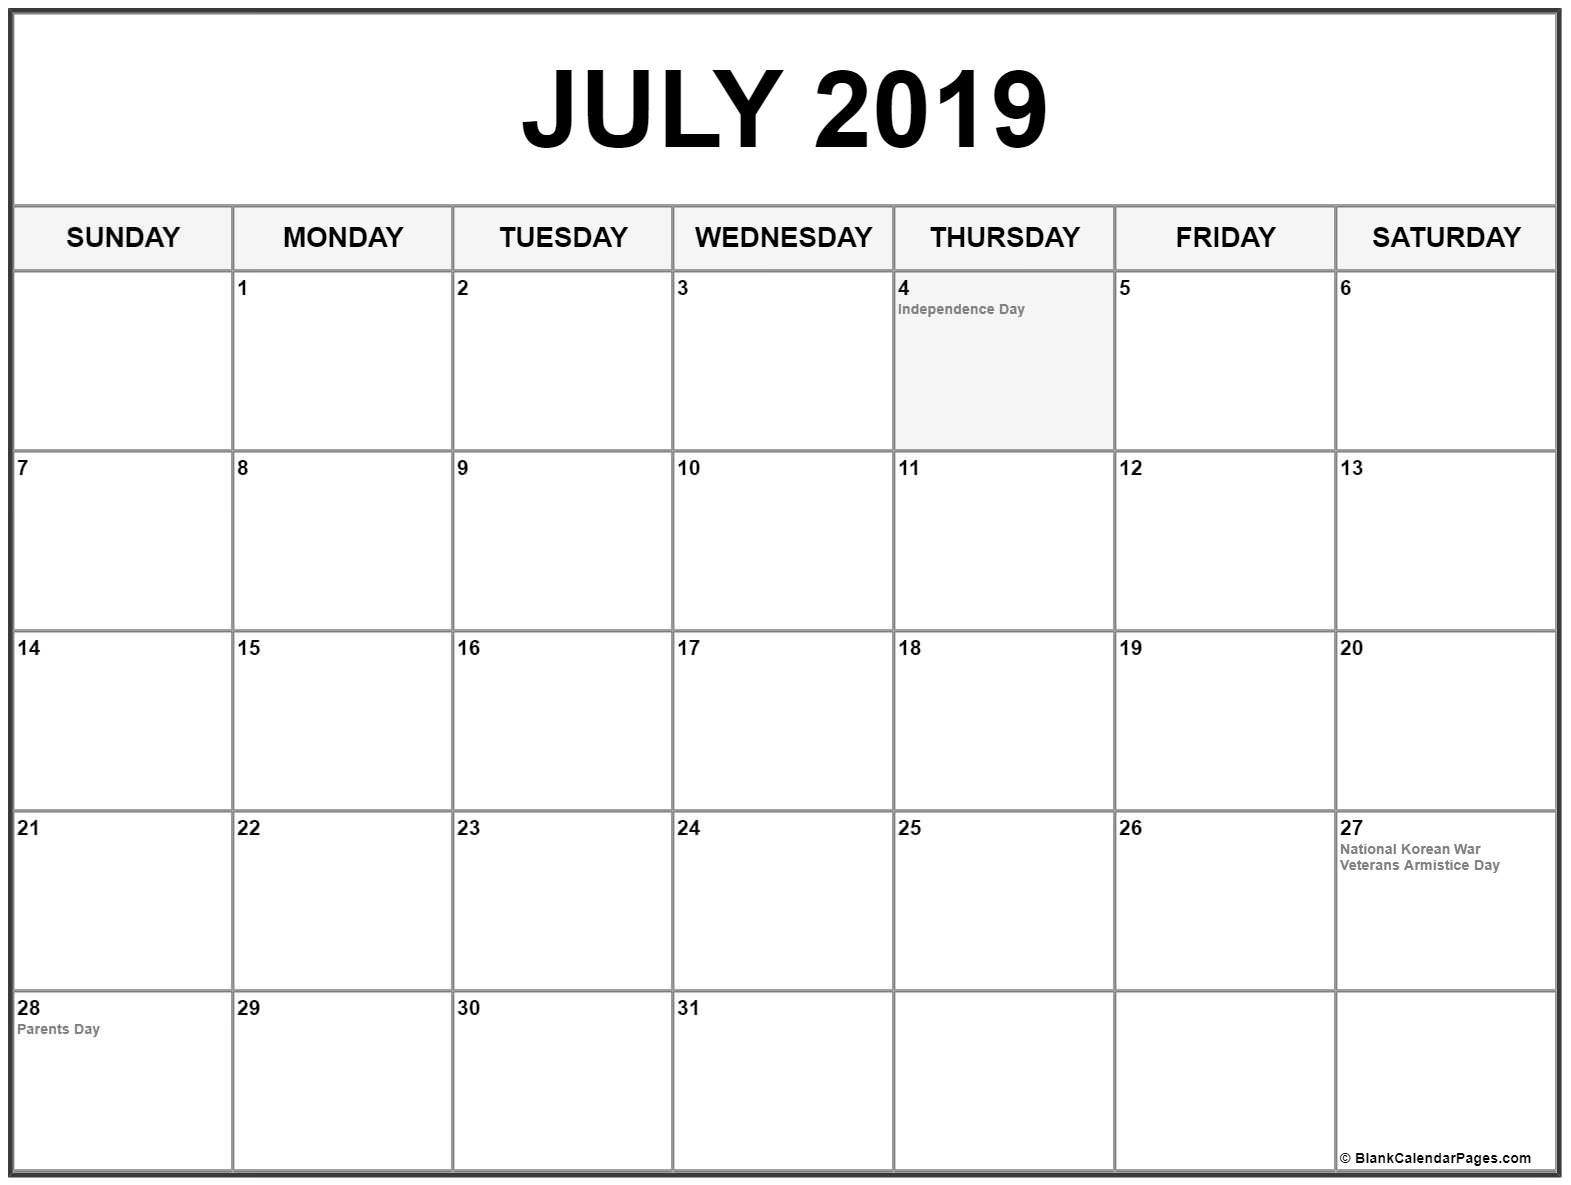 Collection Of July 2019 Calendars With Holidays Calendar